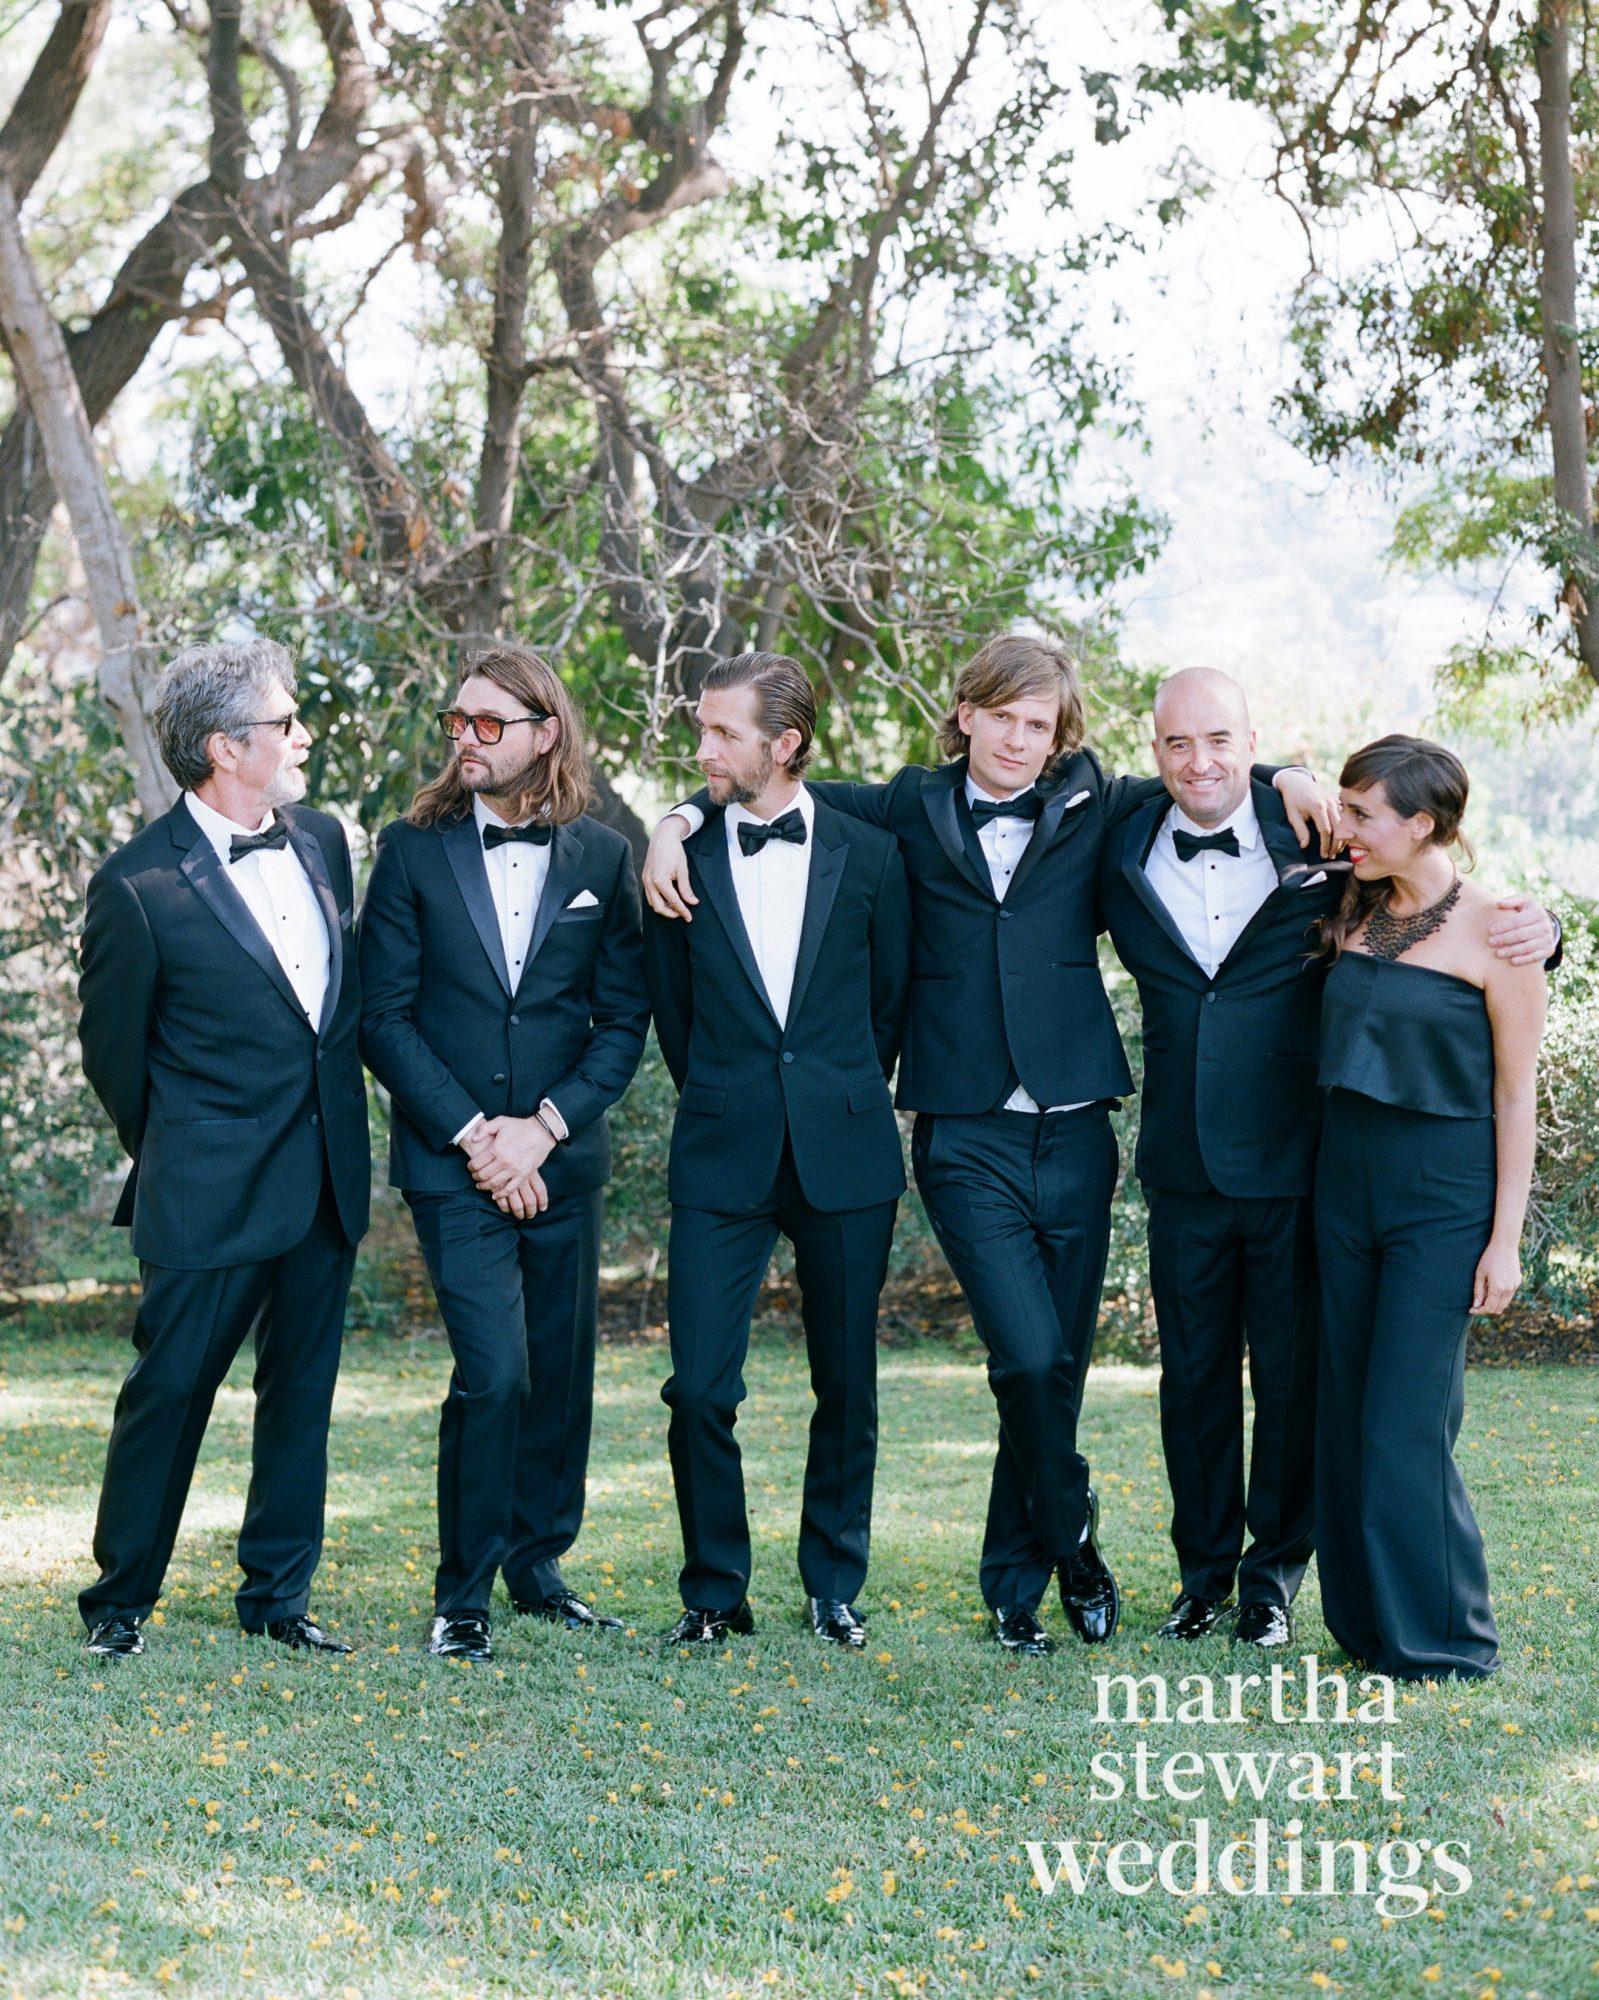 sophia-joel-wedding-los-angeles-119-d112240-watermarked-0915.jpg